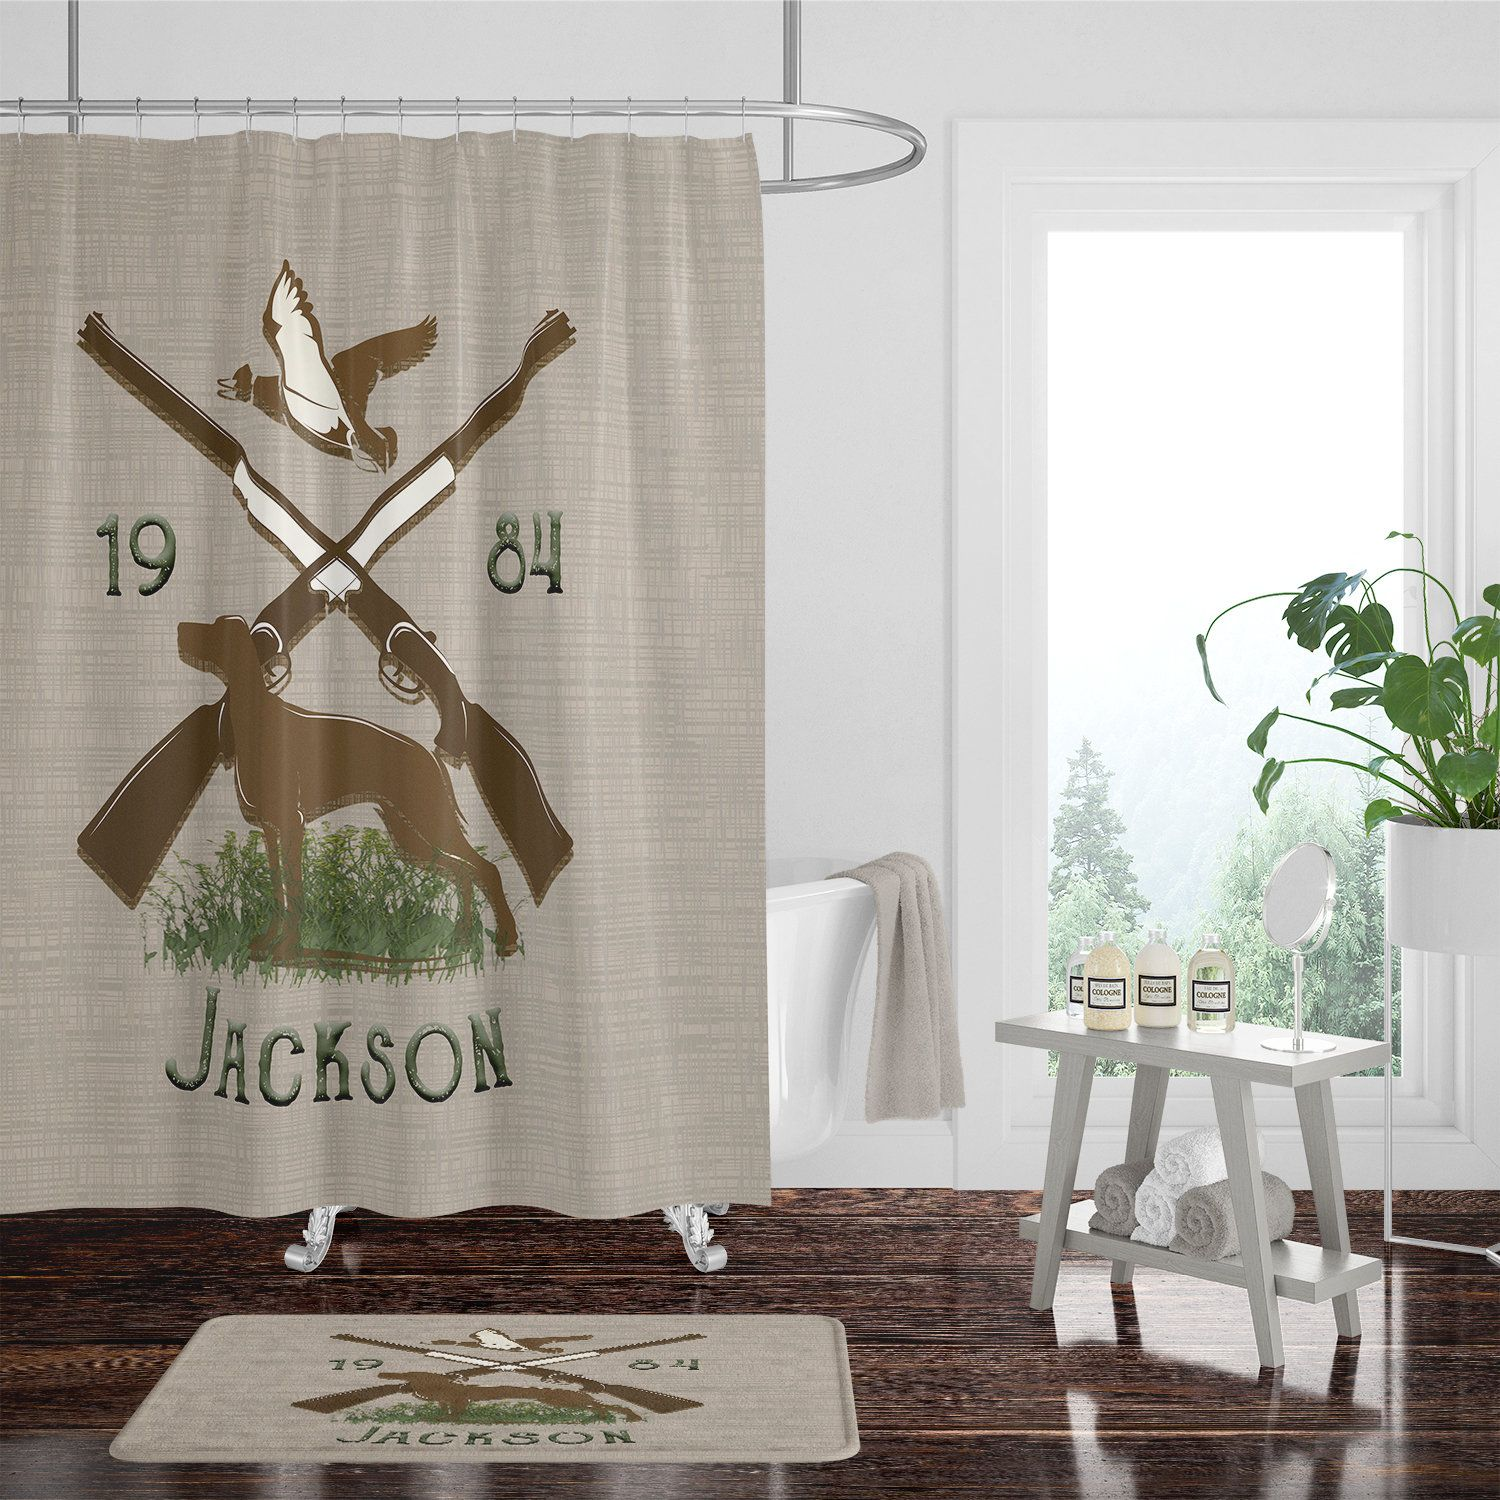 Cottage Shower Curtain Personalized Rustic Hunting Cabin Shower Curtain Cottage Shower